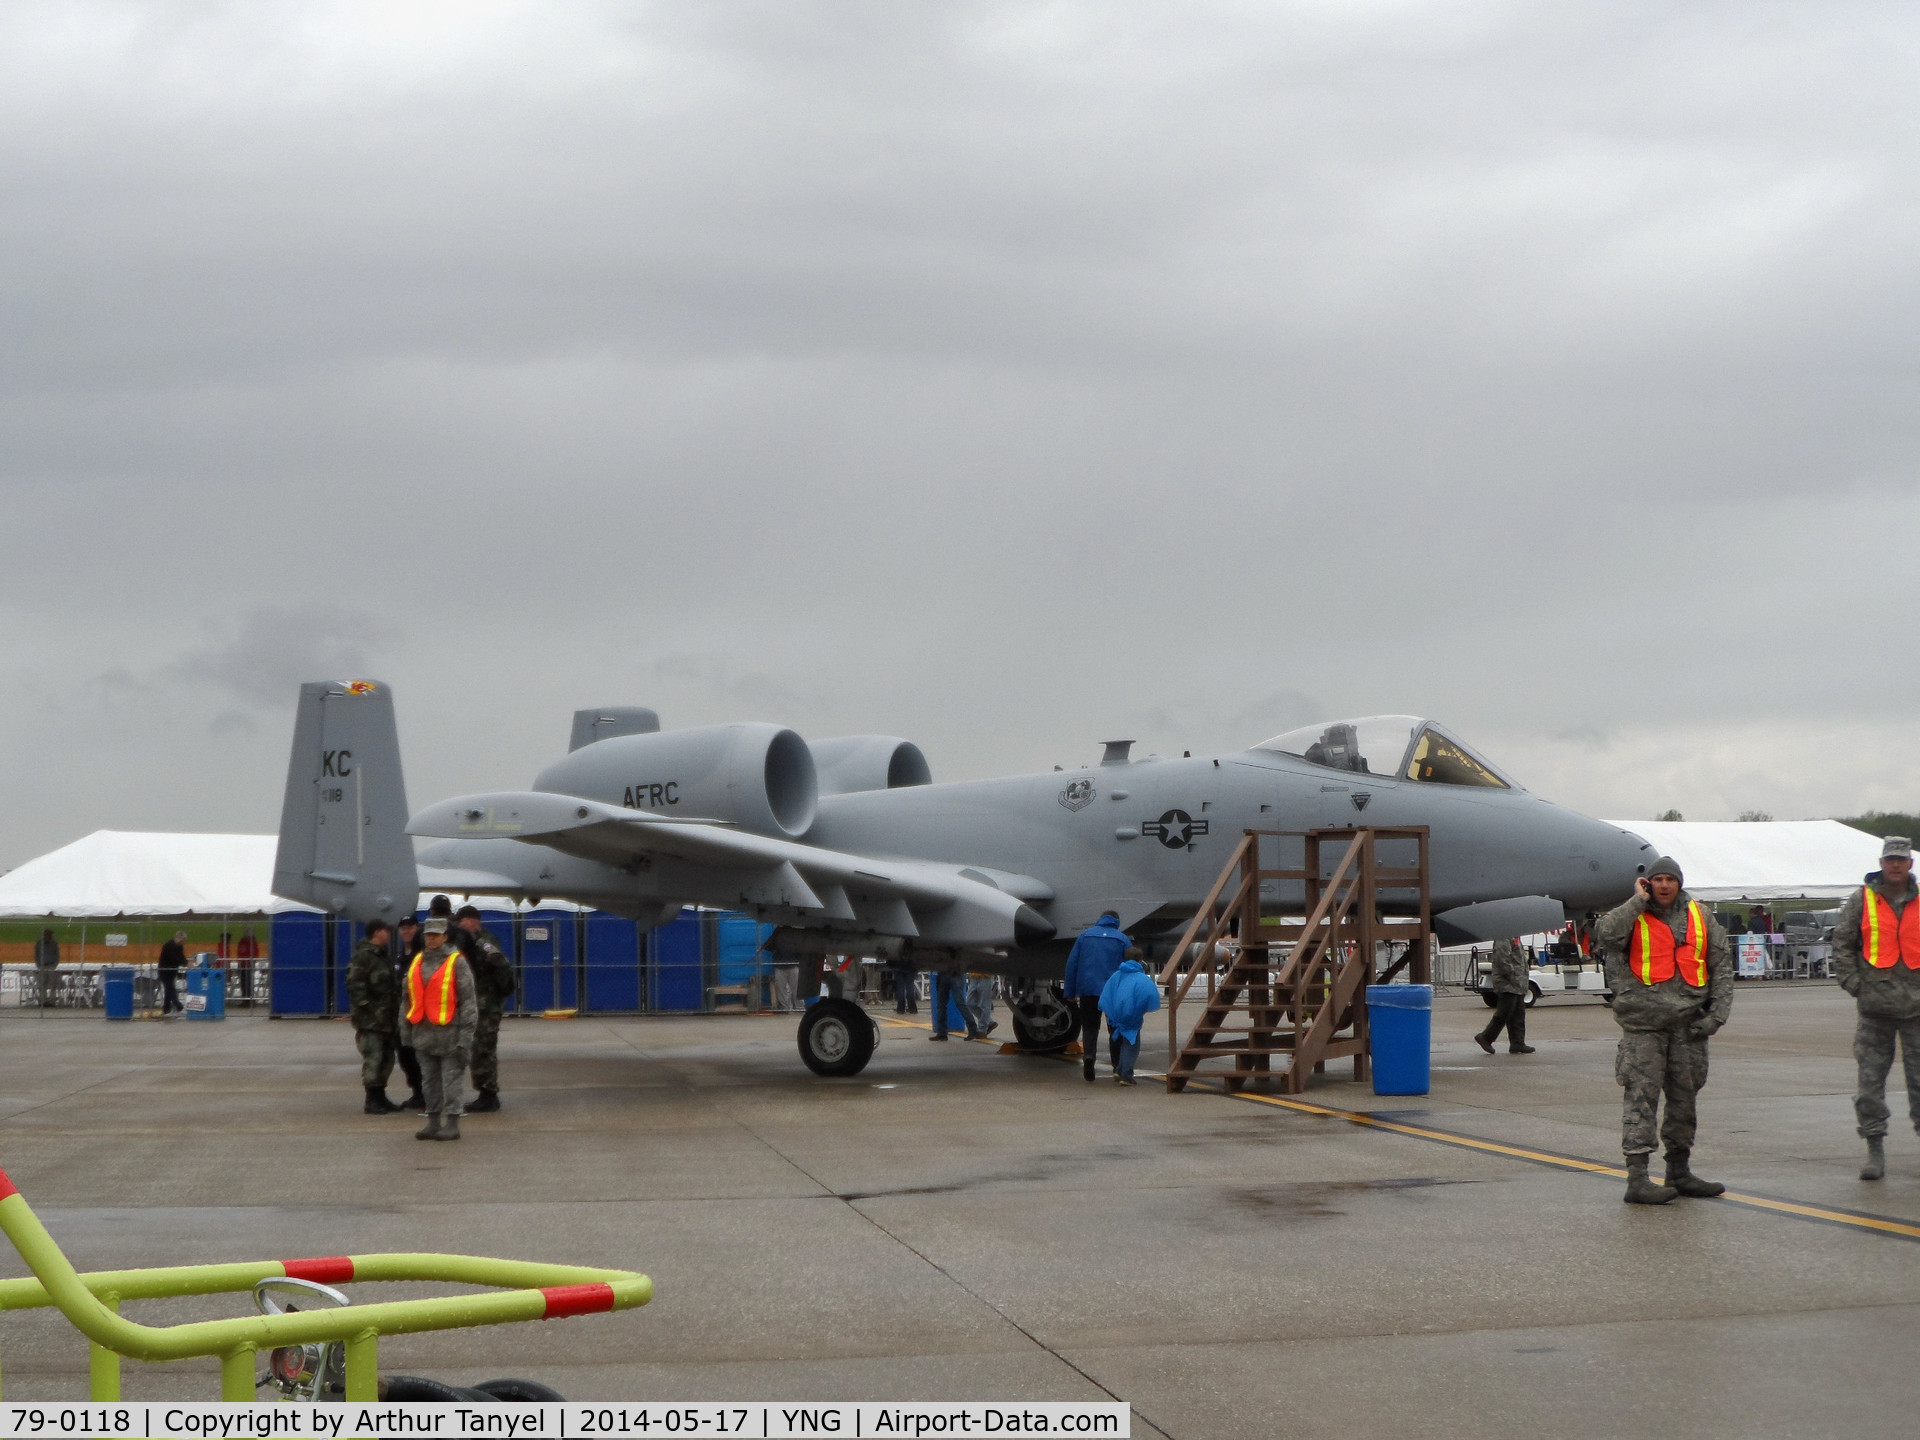 79-0118, 1979 Fairchild Republic A-10C Thunderbolt II C/N A10-0382, On display @ the 2014 Youngstown Airshow